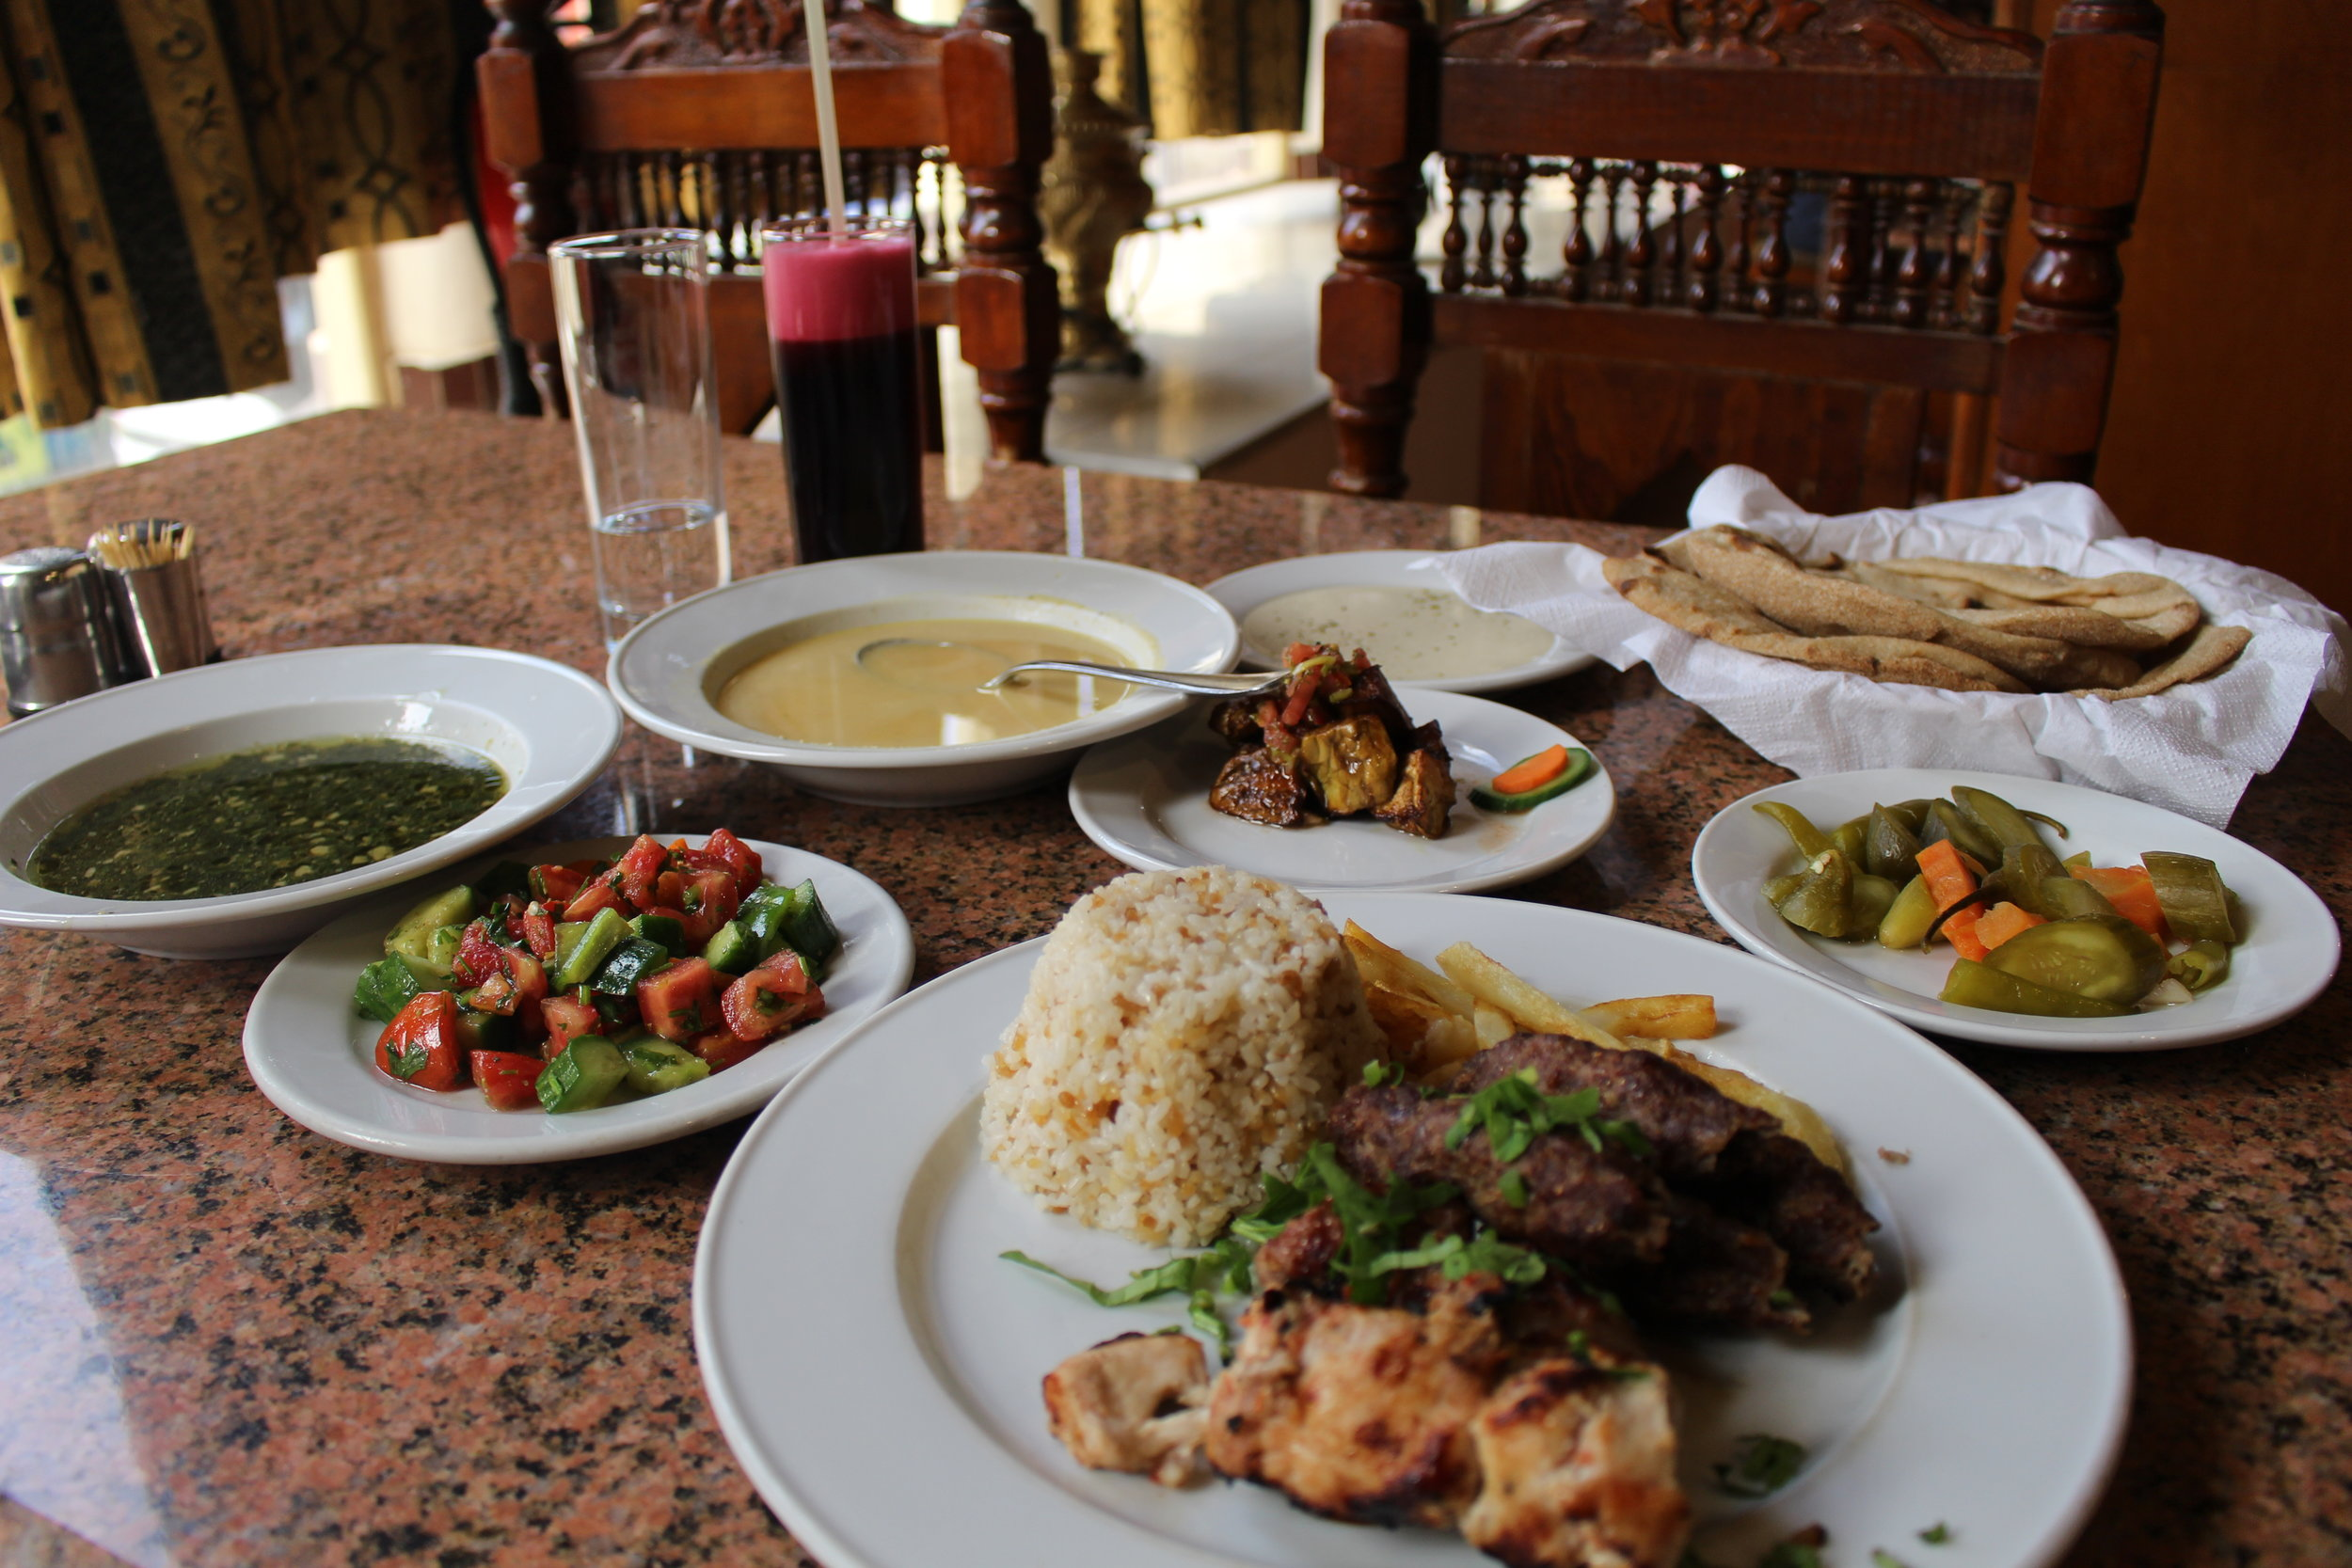 All of this cost me about $8 USD from El Hussien, which is walking distance from the Luxor Hilton Resort & Spa.